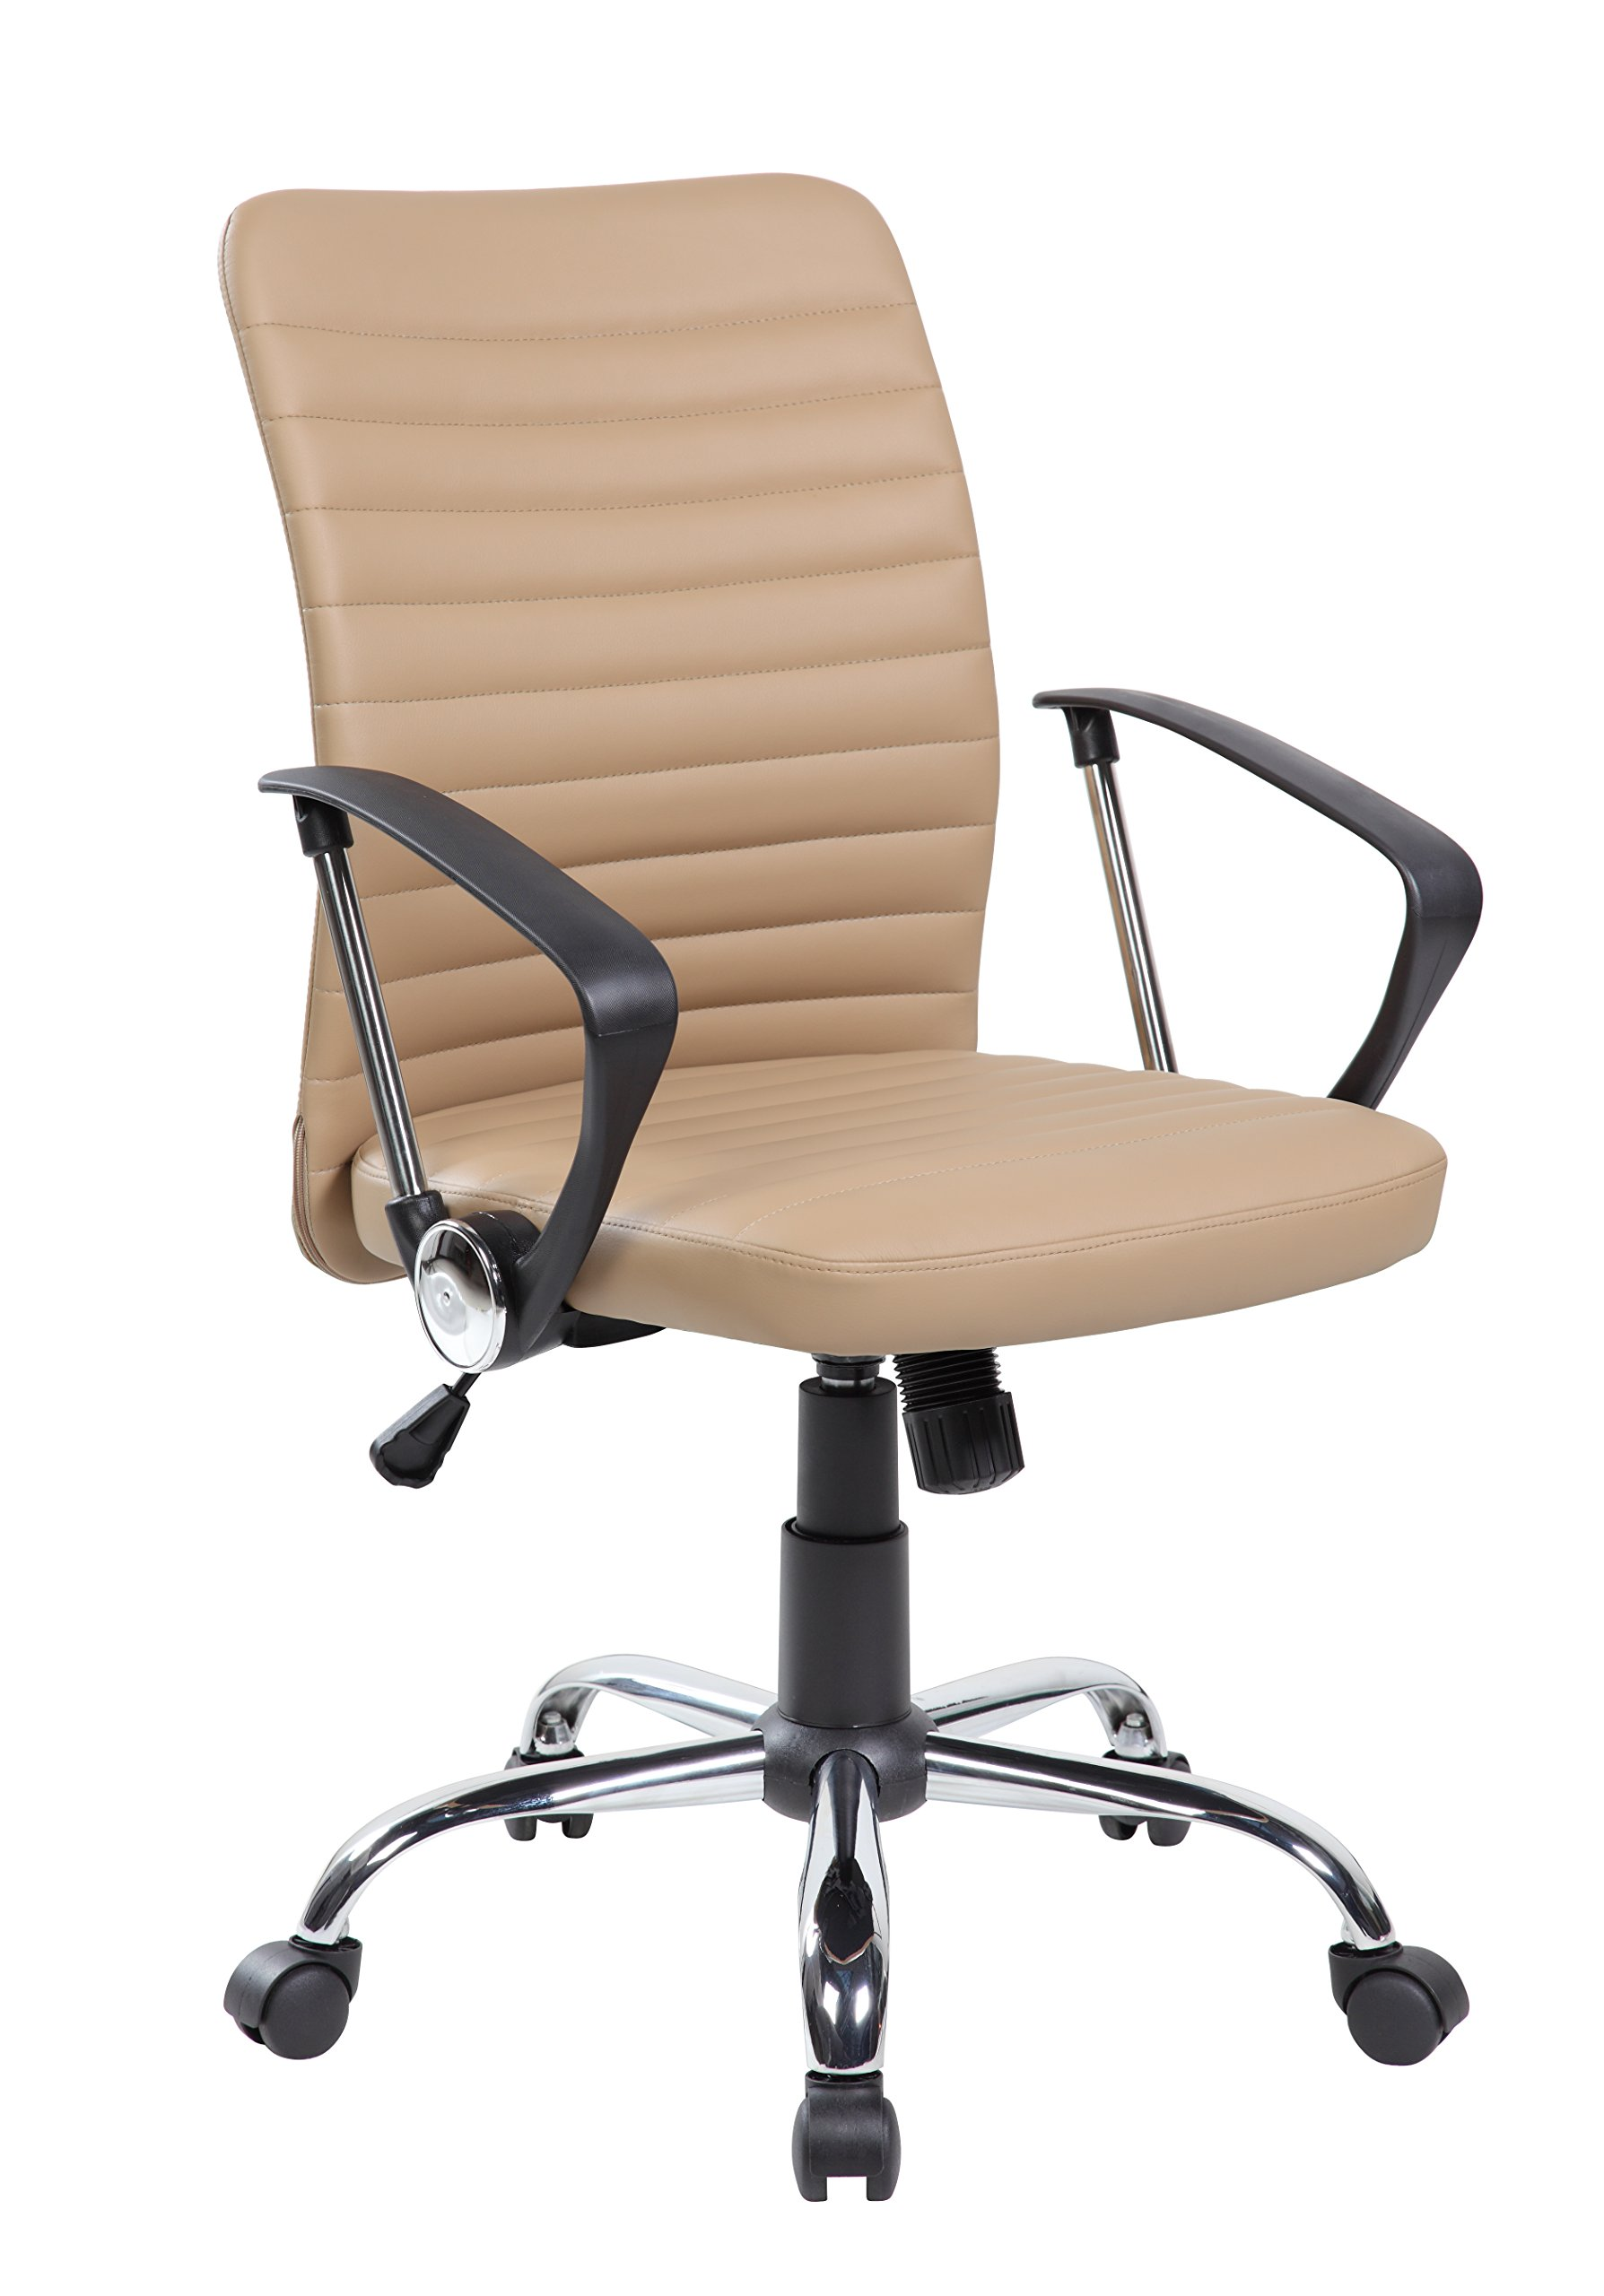 KERLAND Ergonomic Ribbed Mid Back Height Adjustable Executive Swivel Office Chair with Arms, PU Leather Modern Desk Chair (Beige)